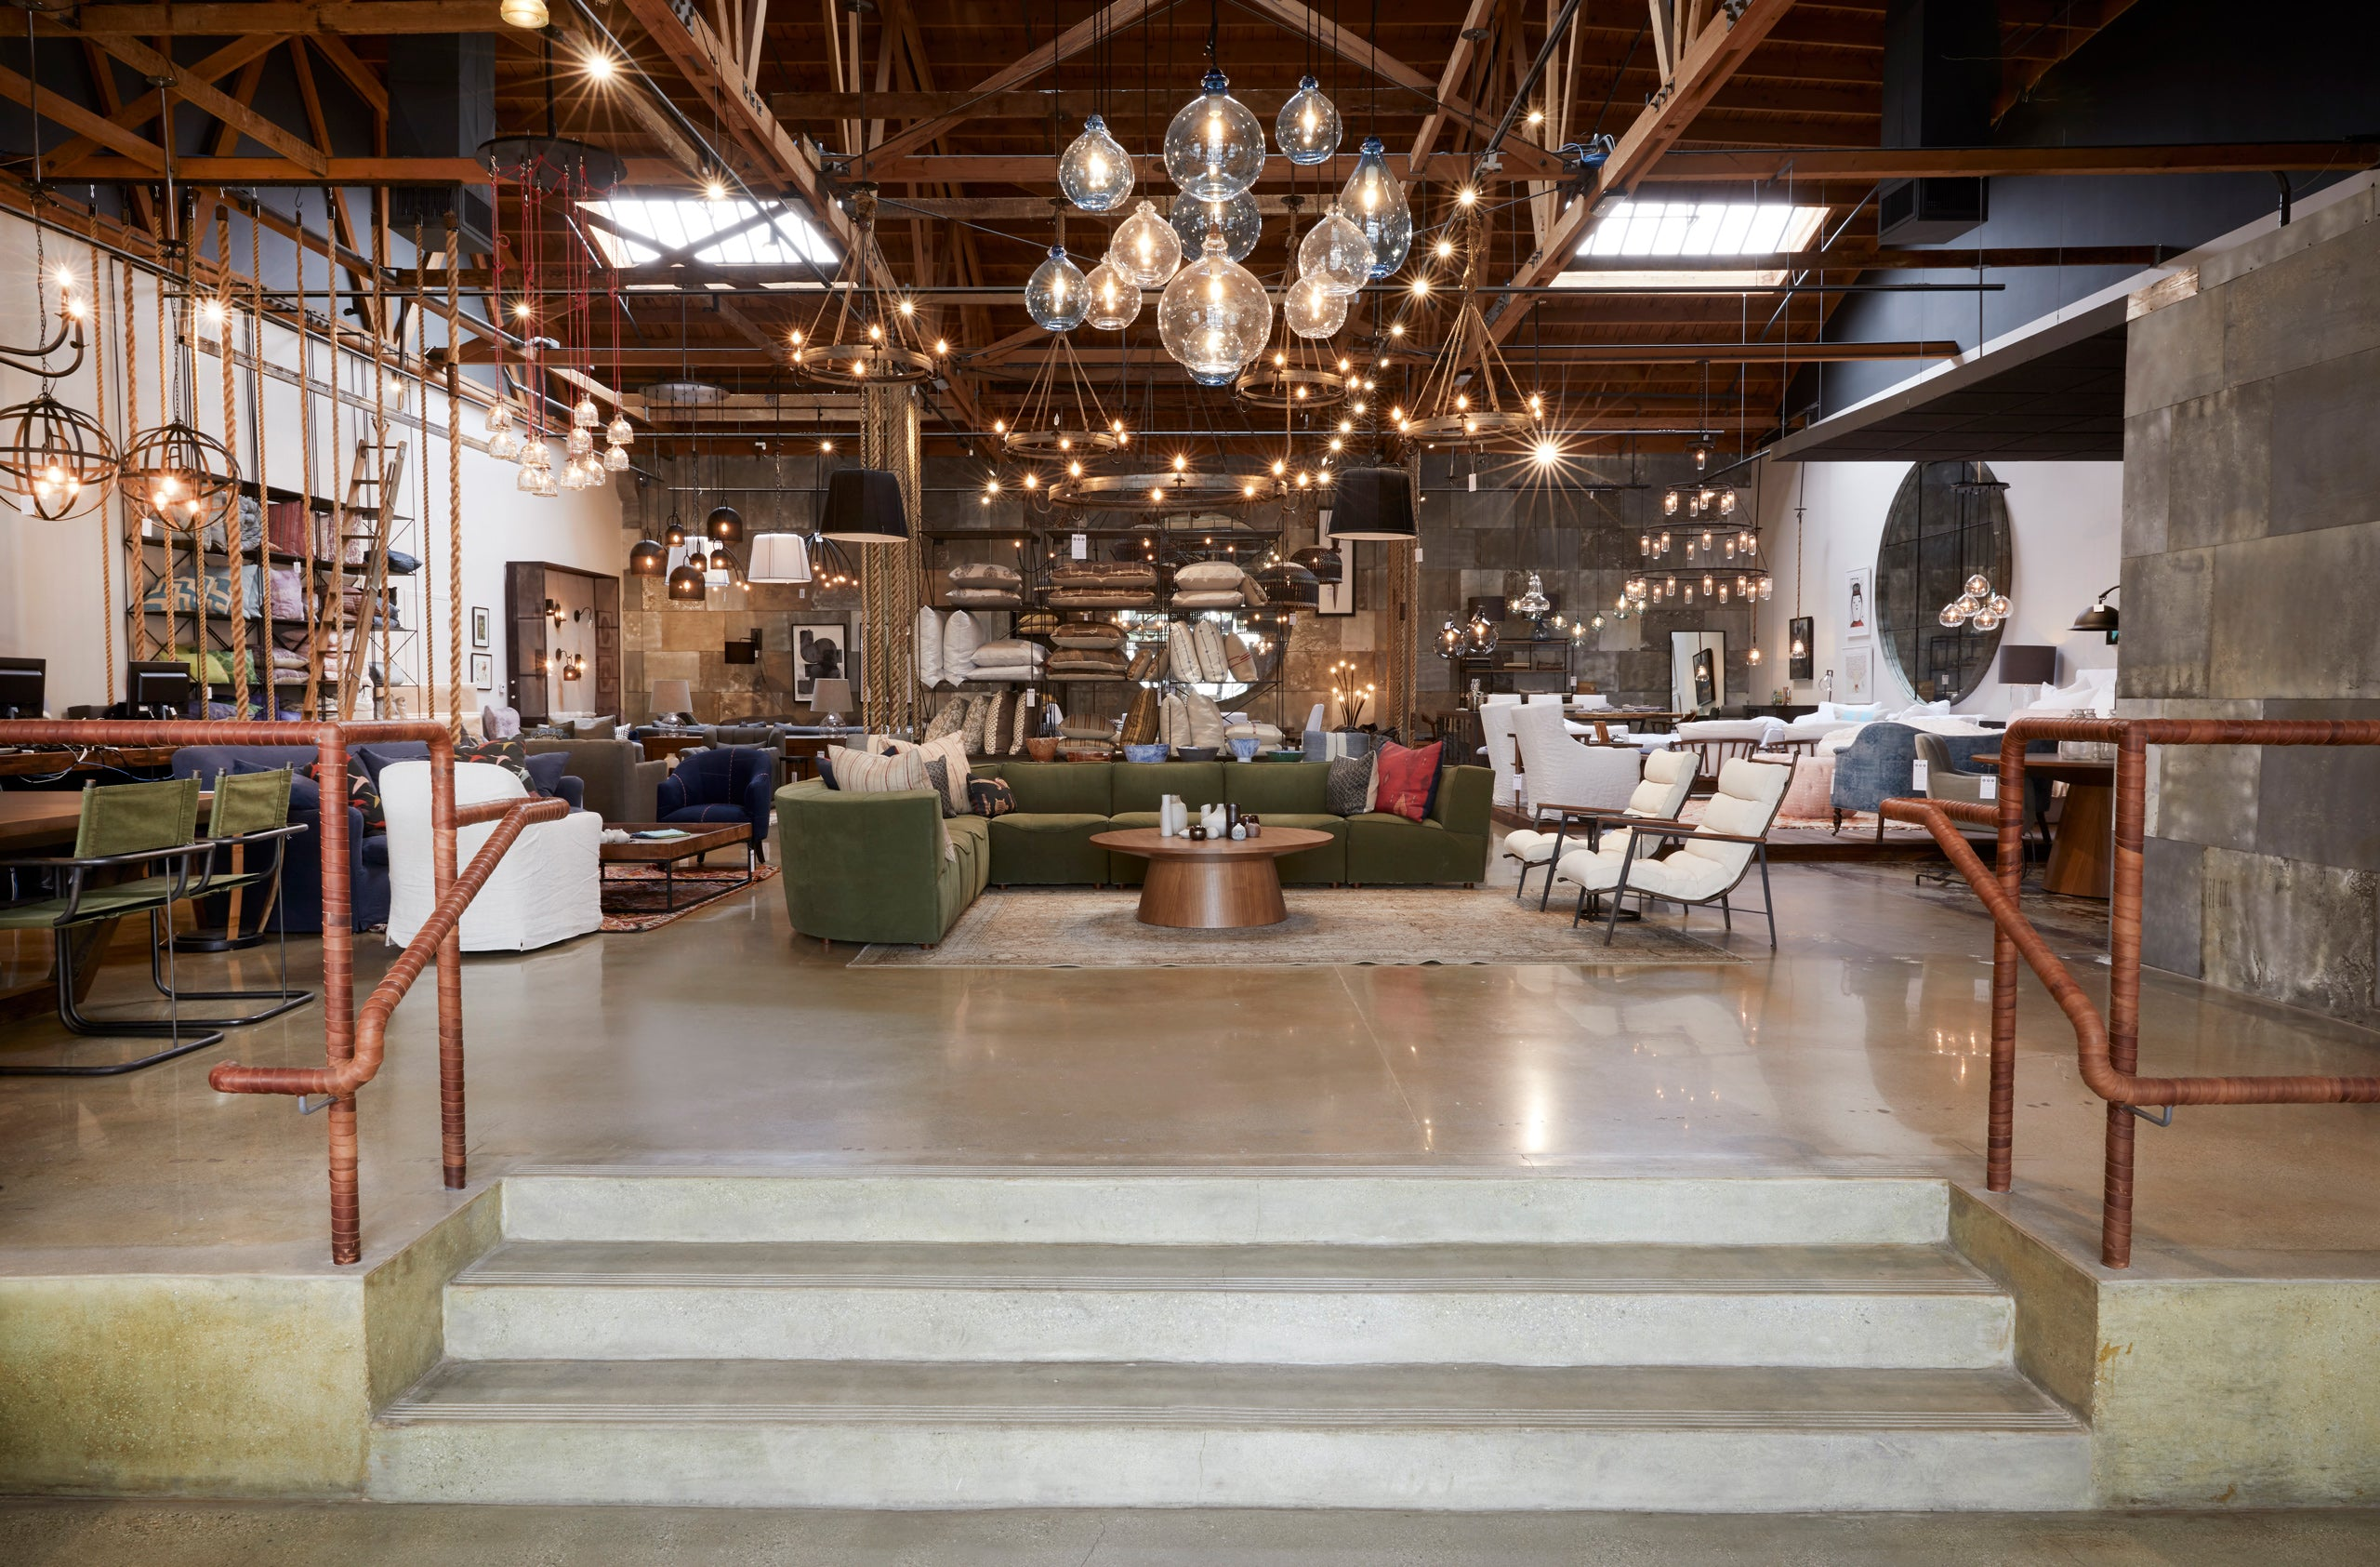 entrance to Culver City Store furniture everywhere and glass pendant lights hanging